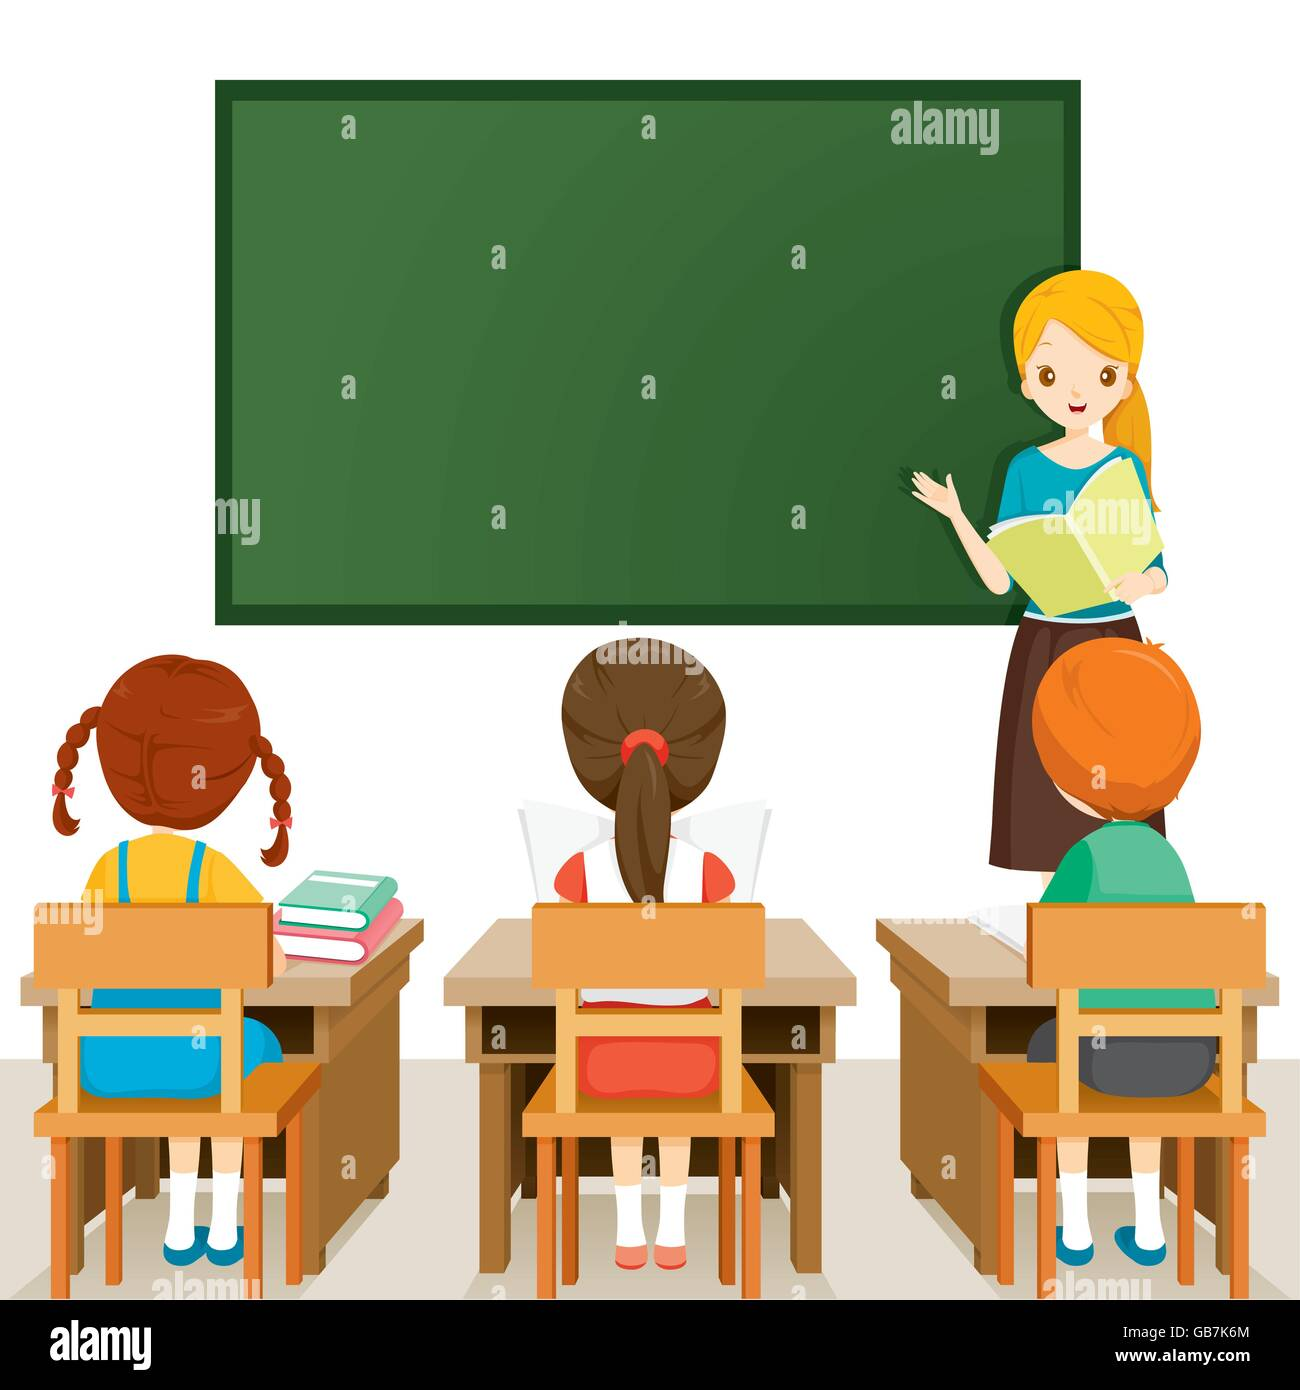 D Animation Classes For Kids